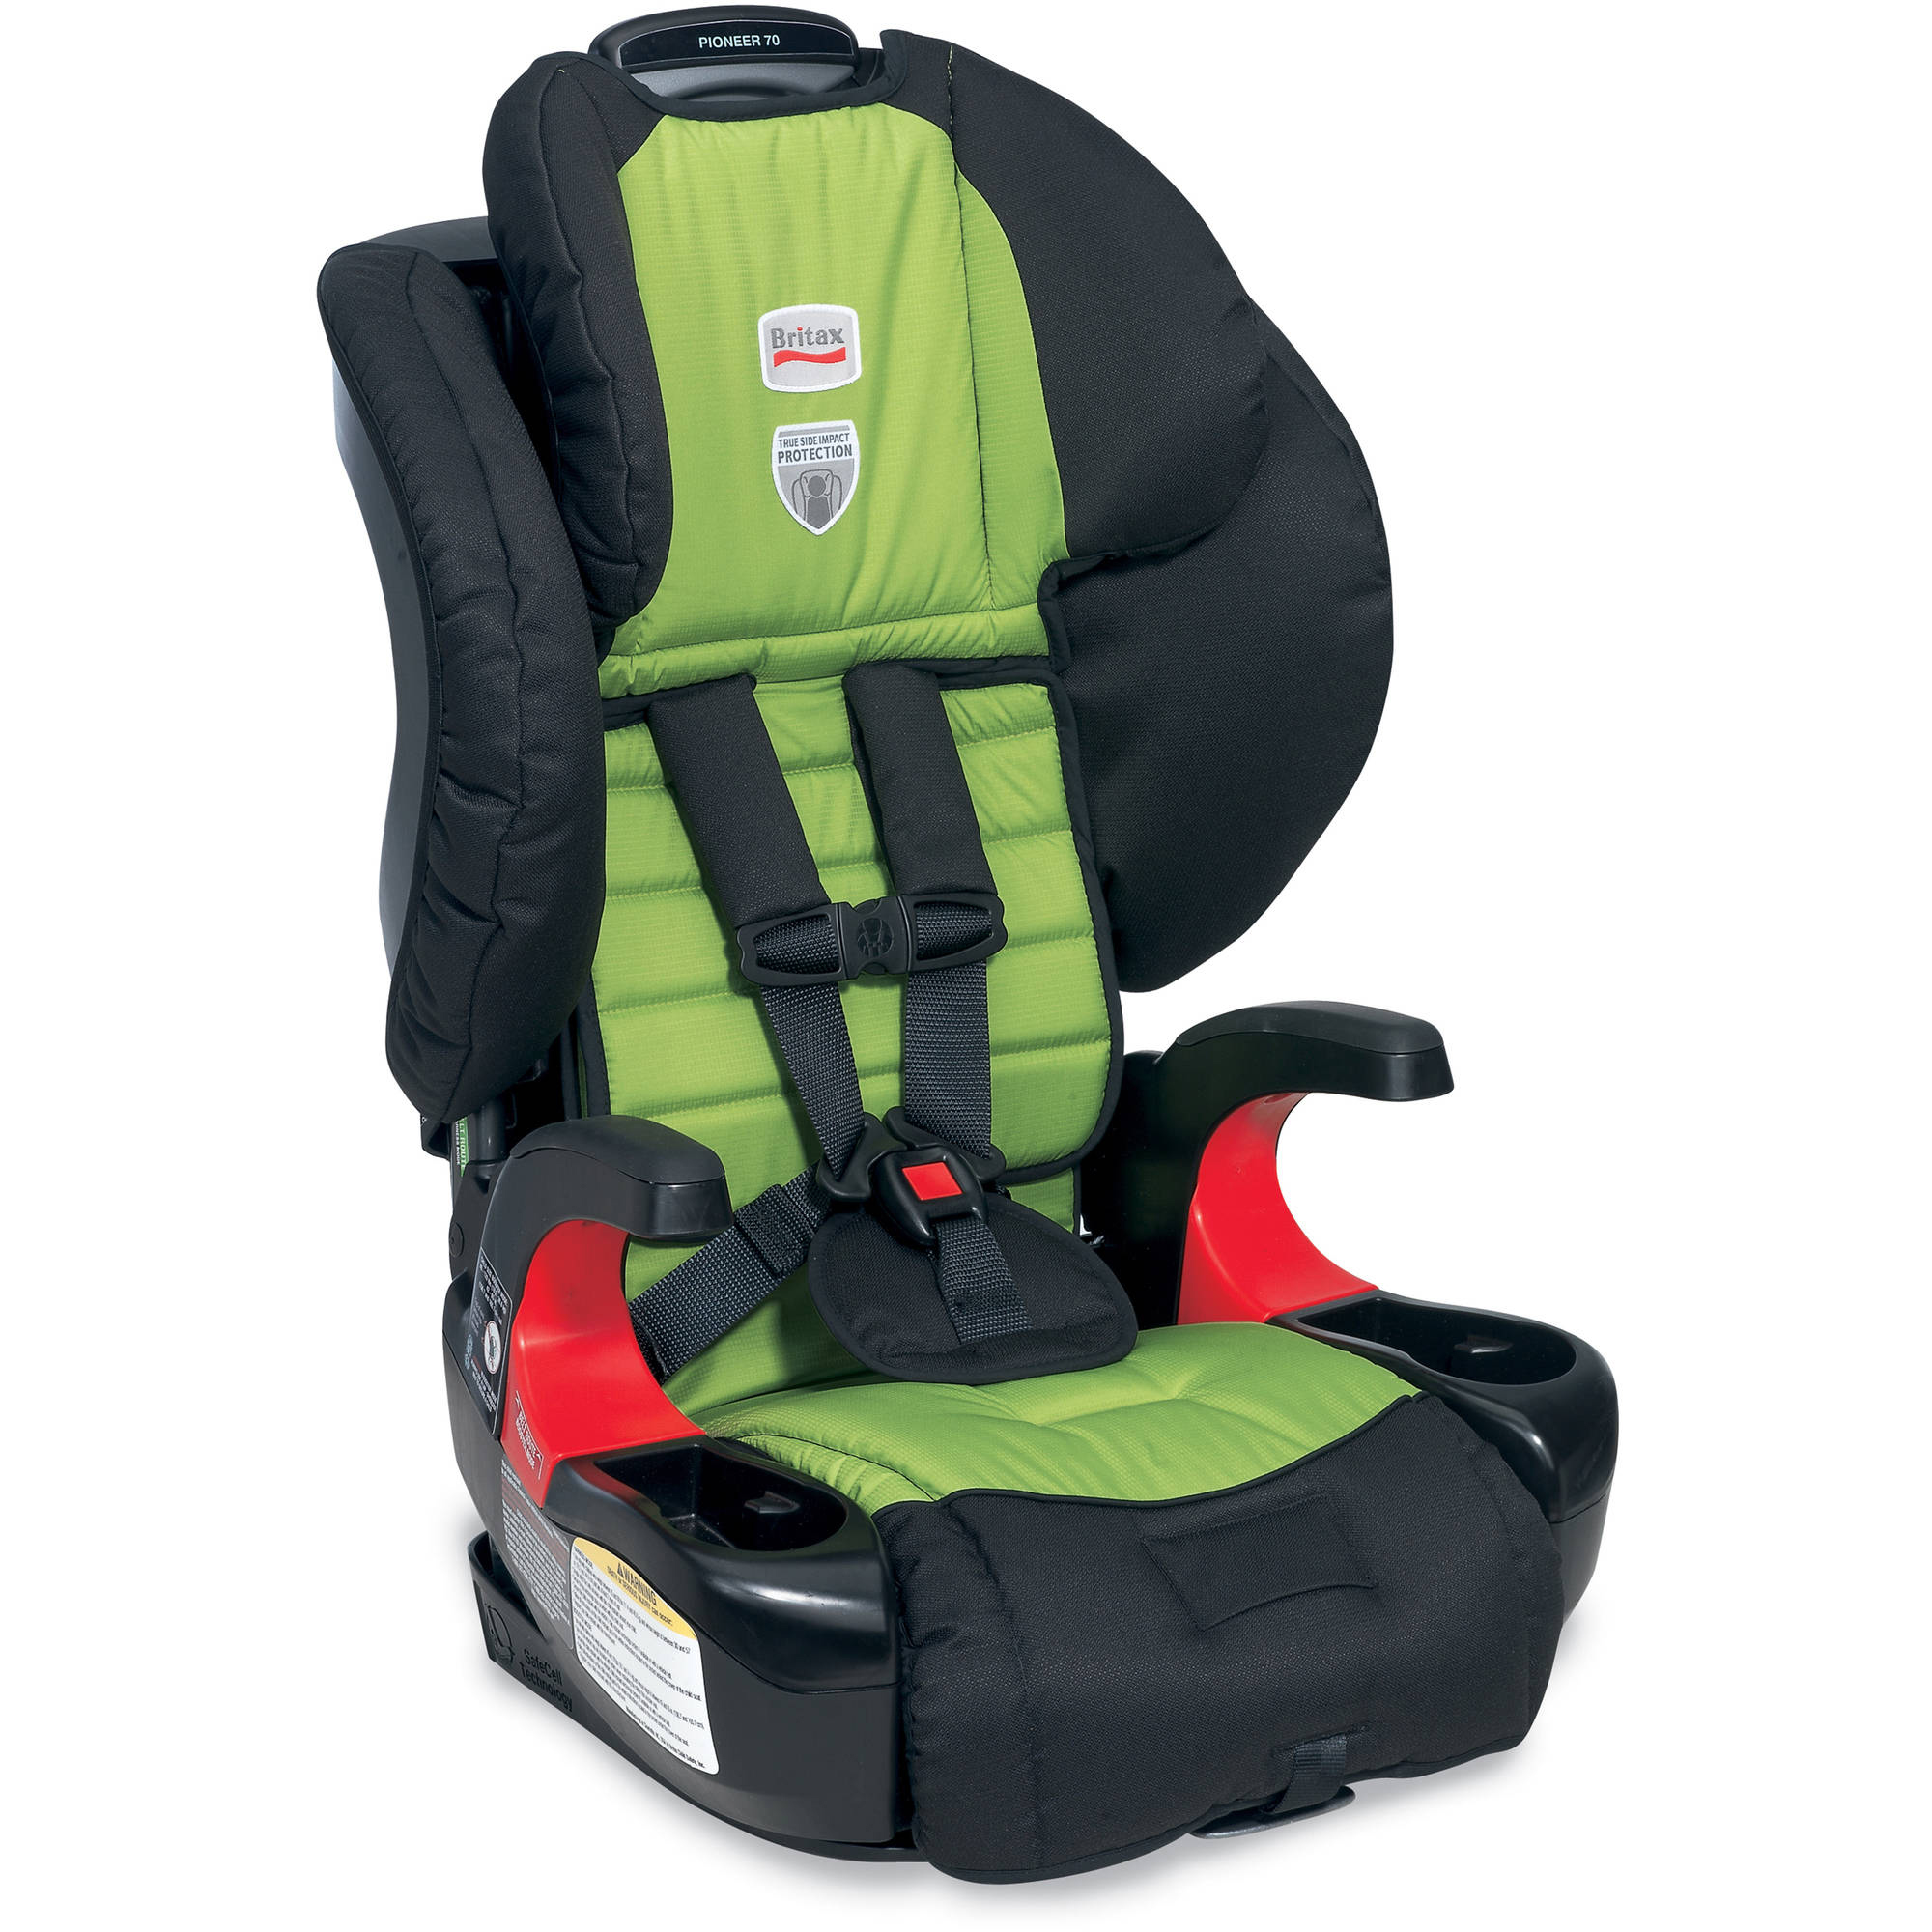 Britax Child Safety, Inc. Britax Pioneer 70 Combination Harness - 2 - Booster Car Seat